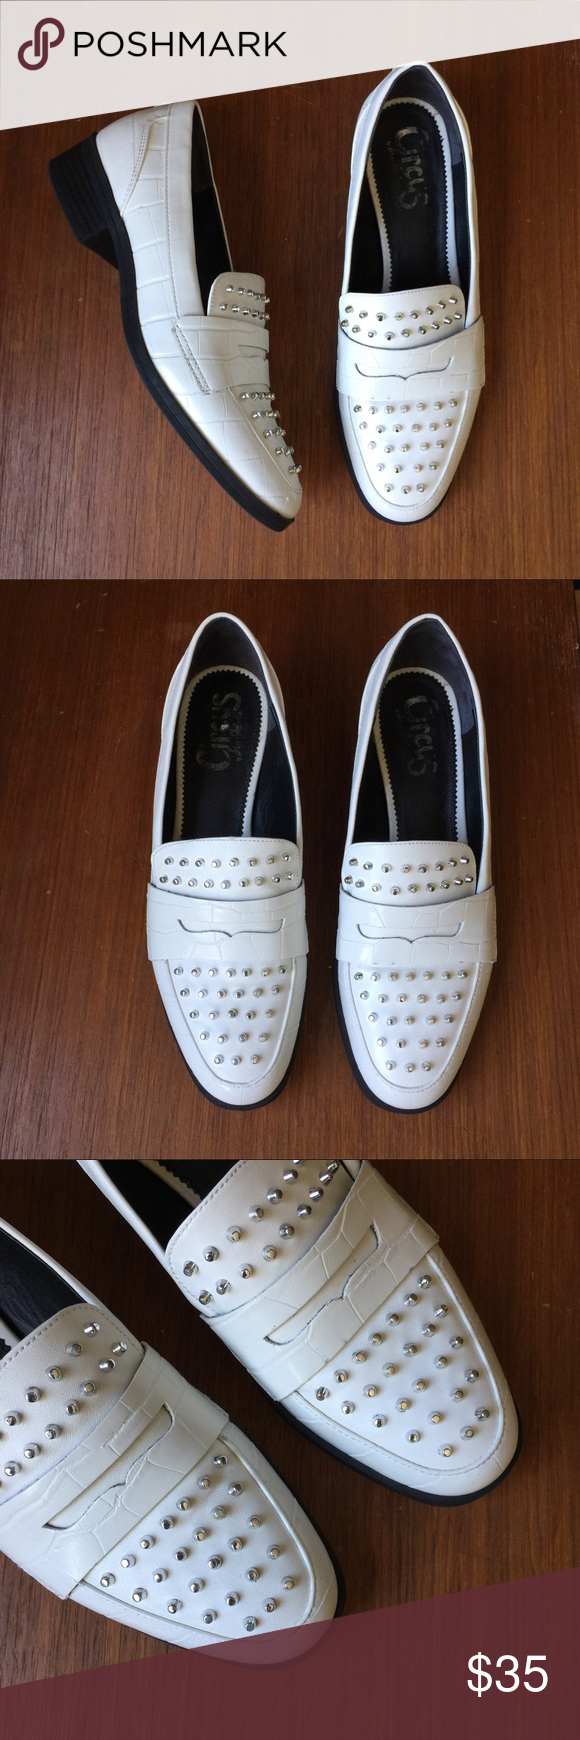 e0194c35dc75 Circus by Sam Edelman White Studded Loafers An edgy twist on a classic  shoe. The Lali loafer. Croc embossed pattern. Silver studs. Faux leather.